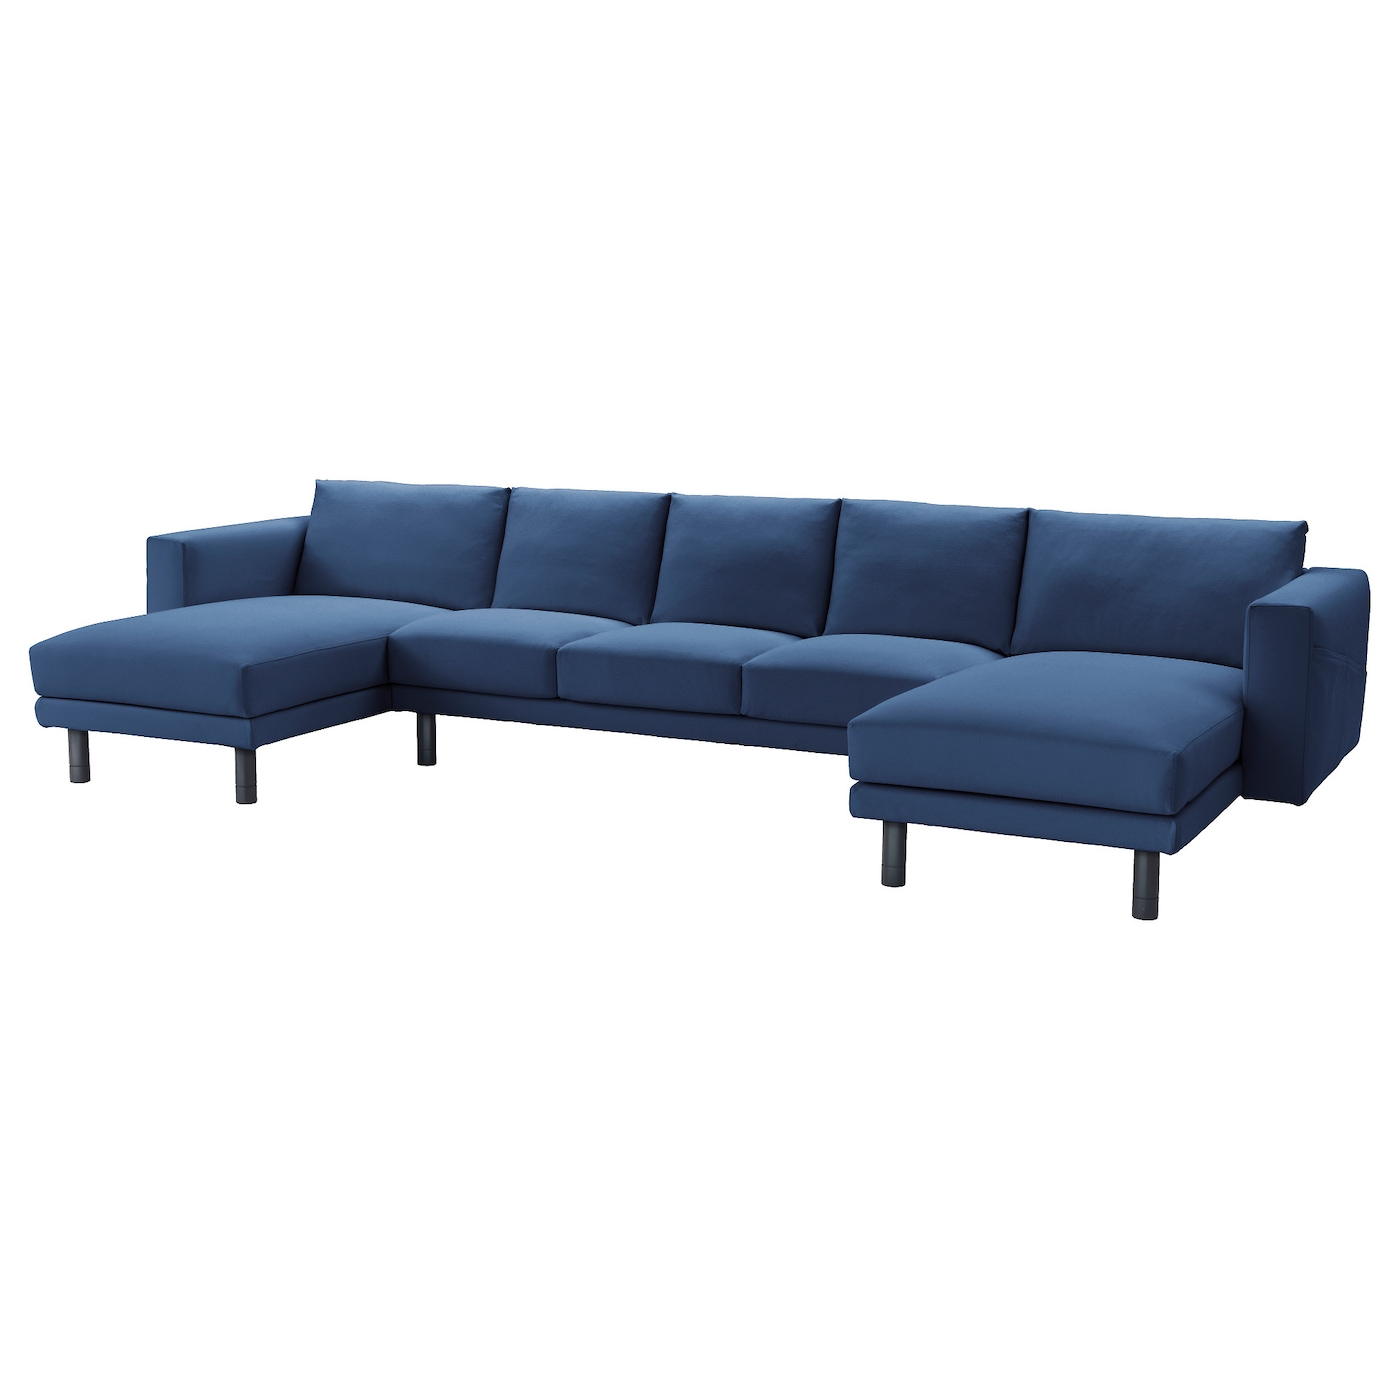 norsborg 3 seat sofa with 2 chaise longues gr sbo dark